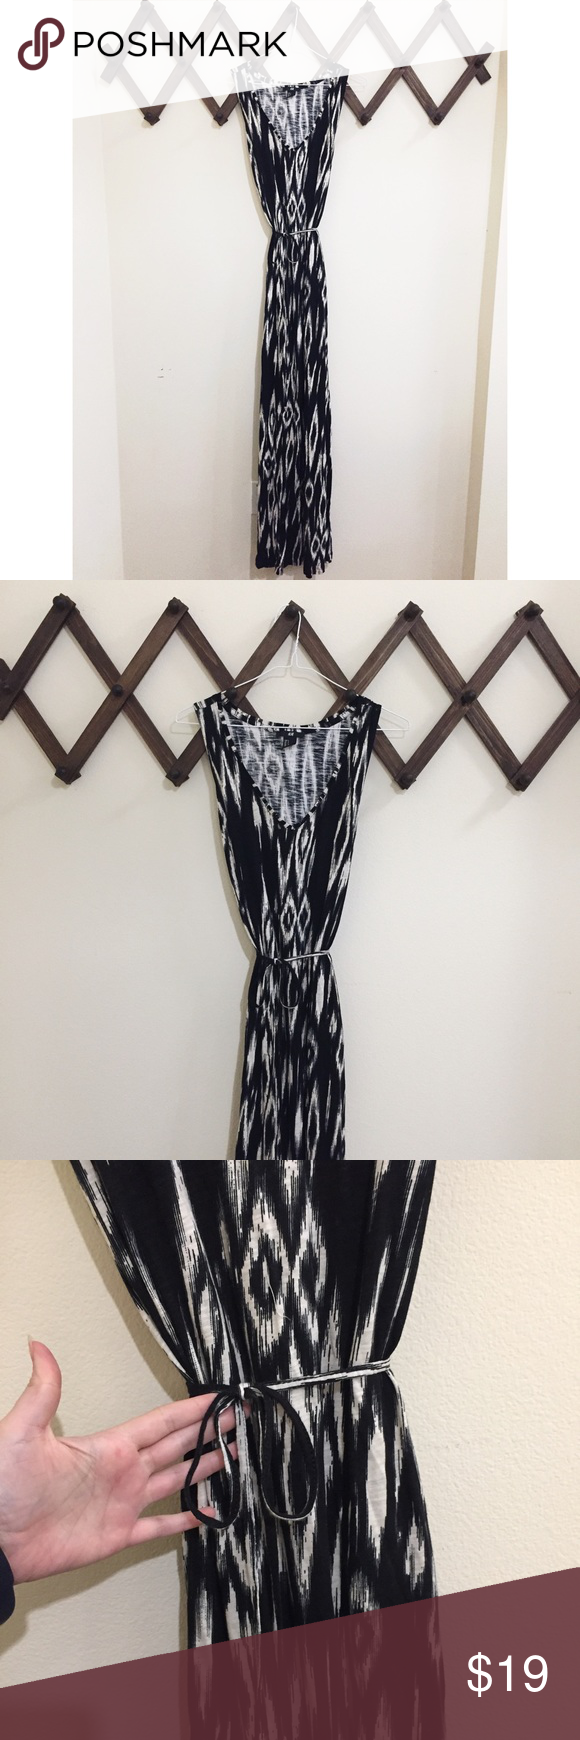 NWOT H&M Boho Tribal Cotton Long Tank Maxi Dress NWOT H&M Boho Tribal Cotton Maxi Dress W/ Tie Waist. Long Maxi Tank Top and lightweight cotton. Never Worn!! *NO TRADES* H&M Dresses Maxi